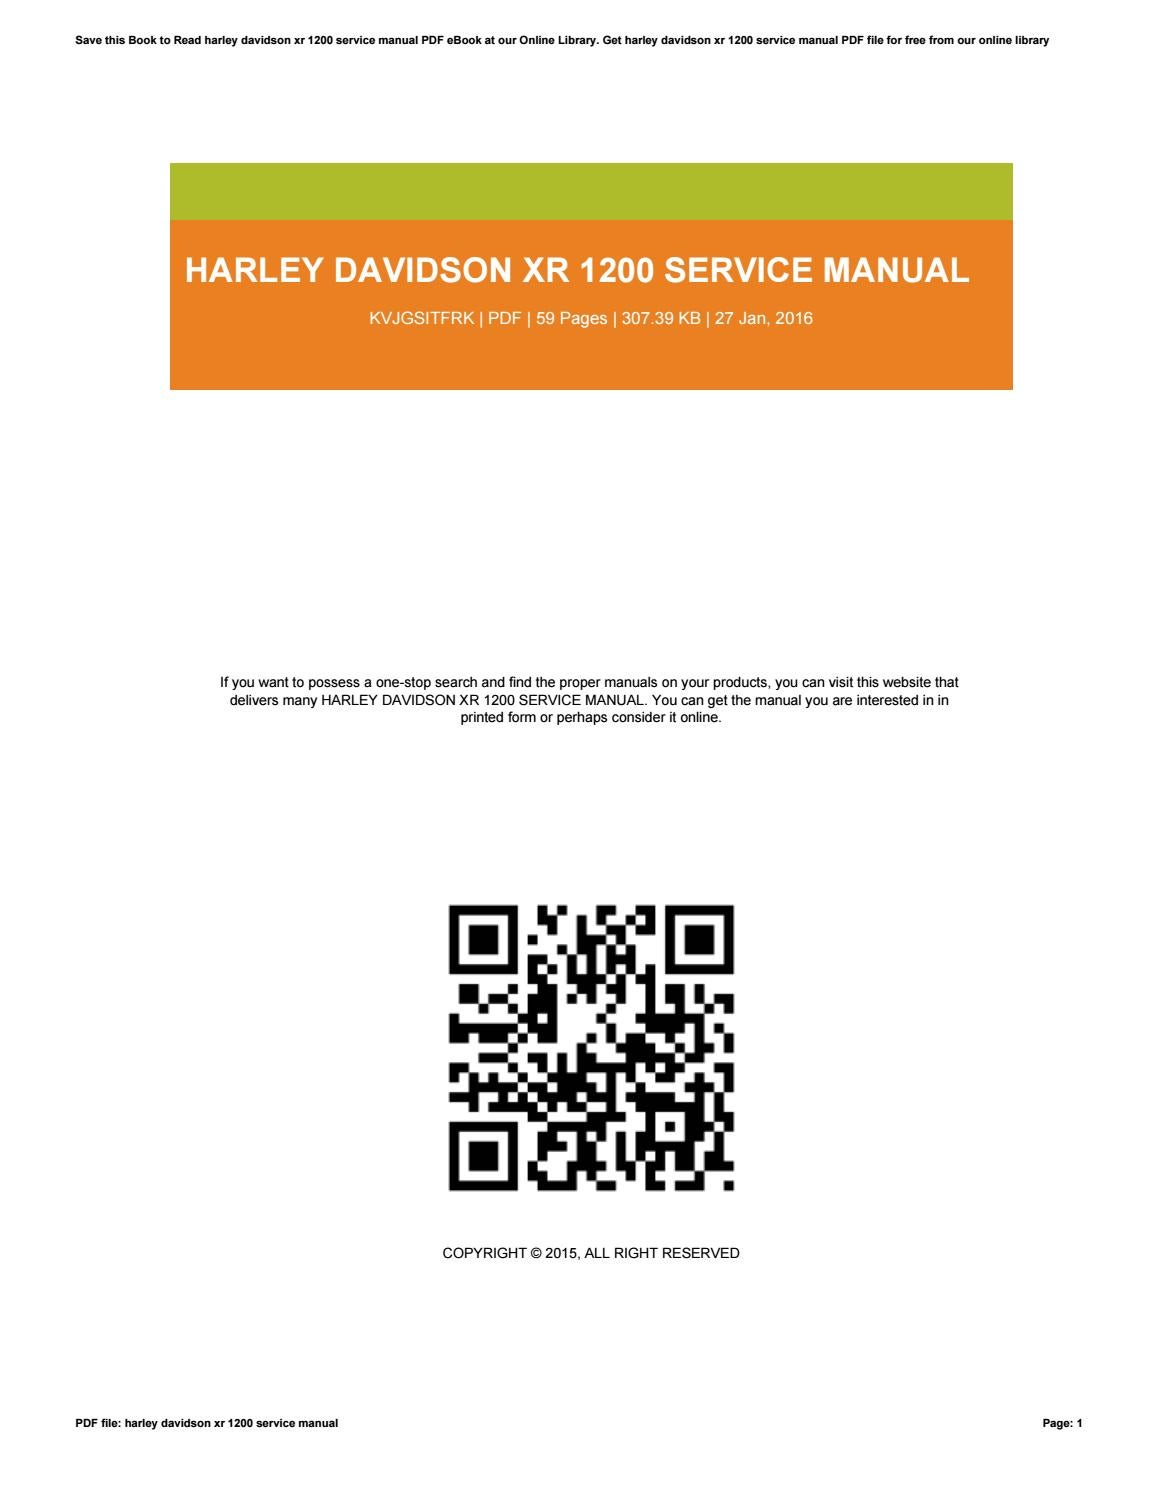 service manual harley davidson xr 1200